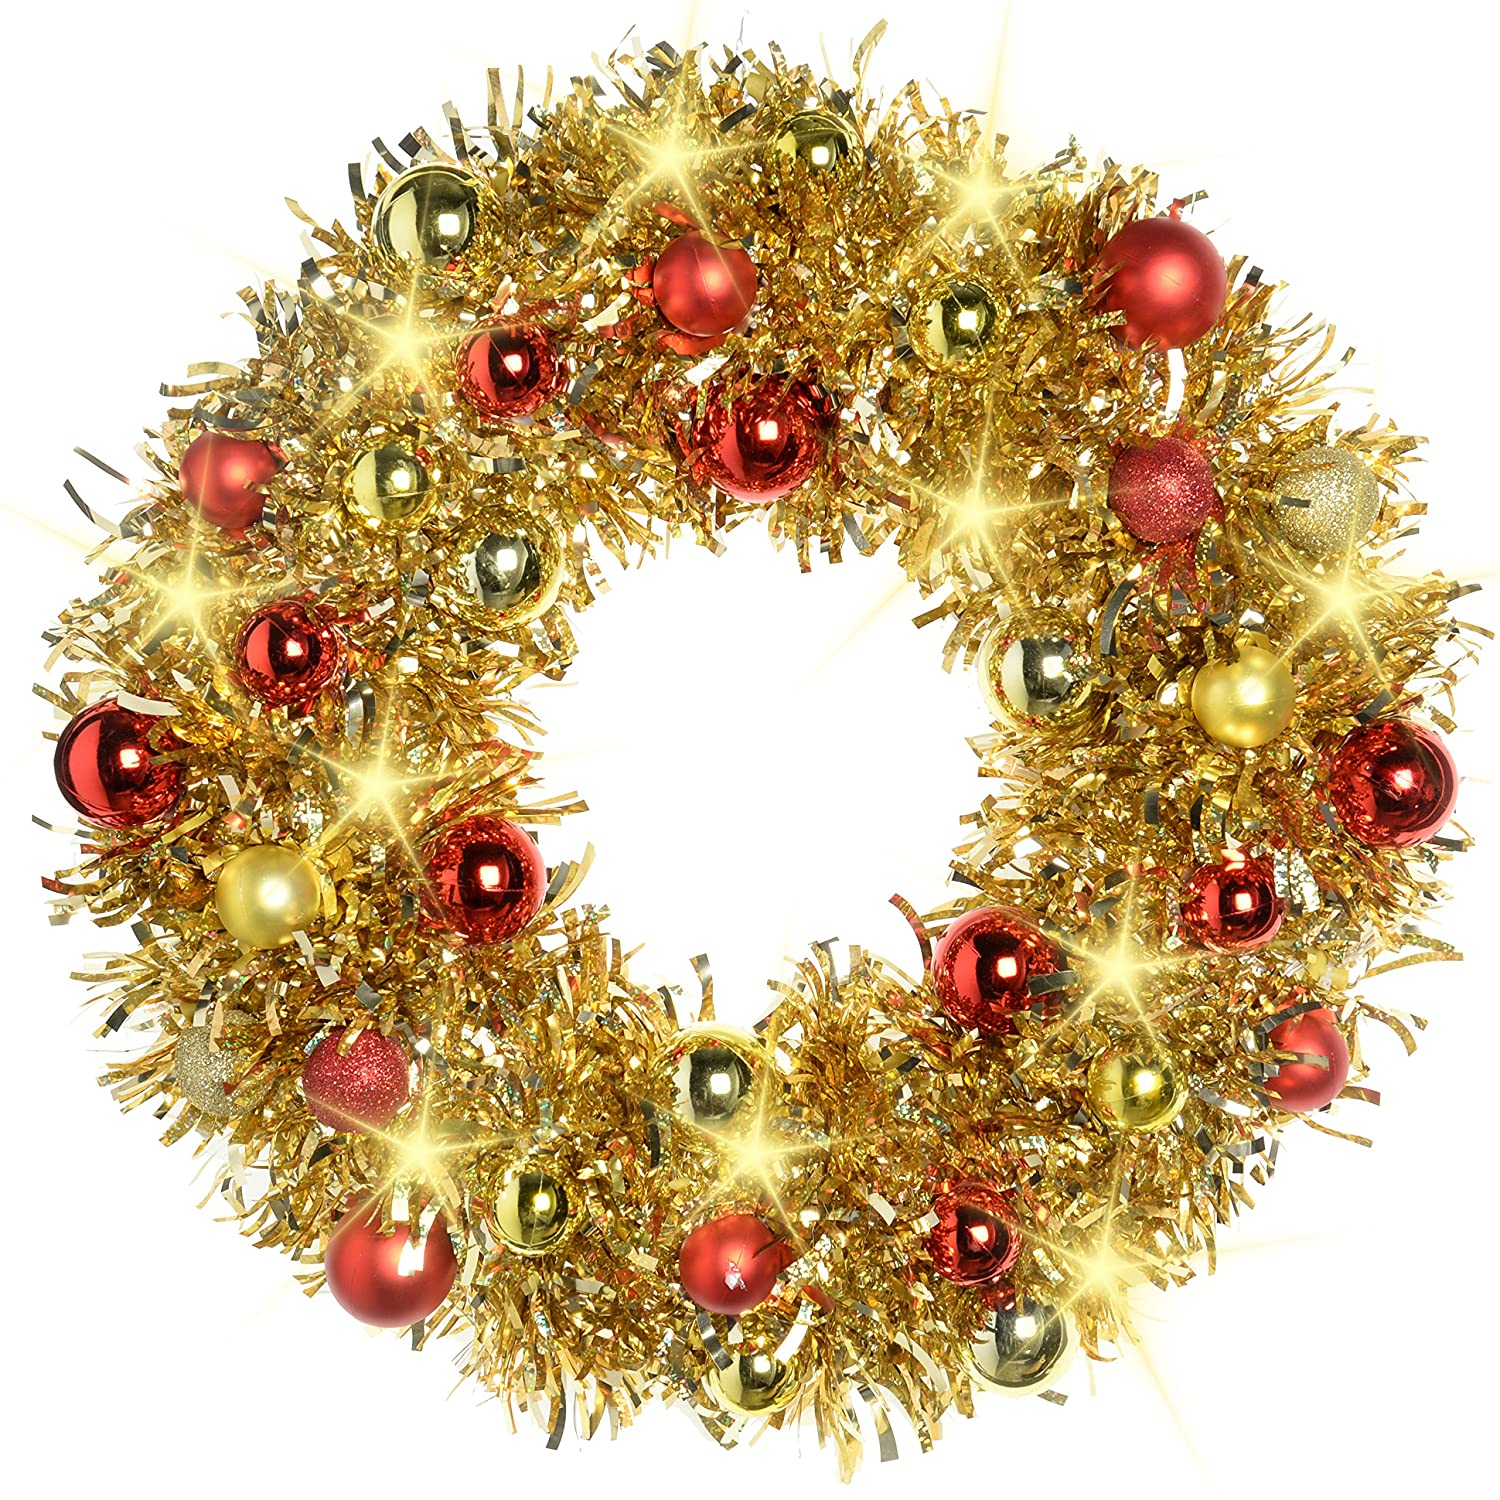 WeRChristmas 36 cm Pre-Lit Tinsel Wreath with Baubles 20-LED Lights Christmas Decoration, Gold/ Red